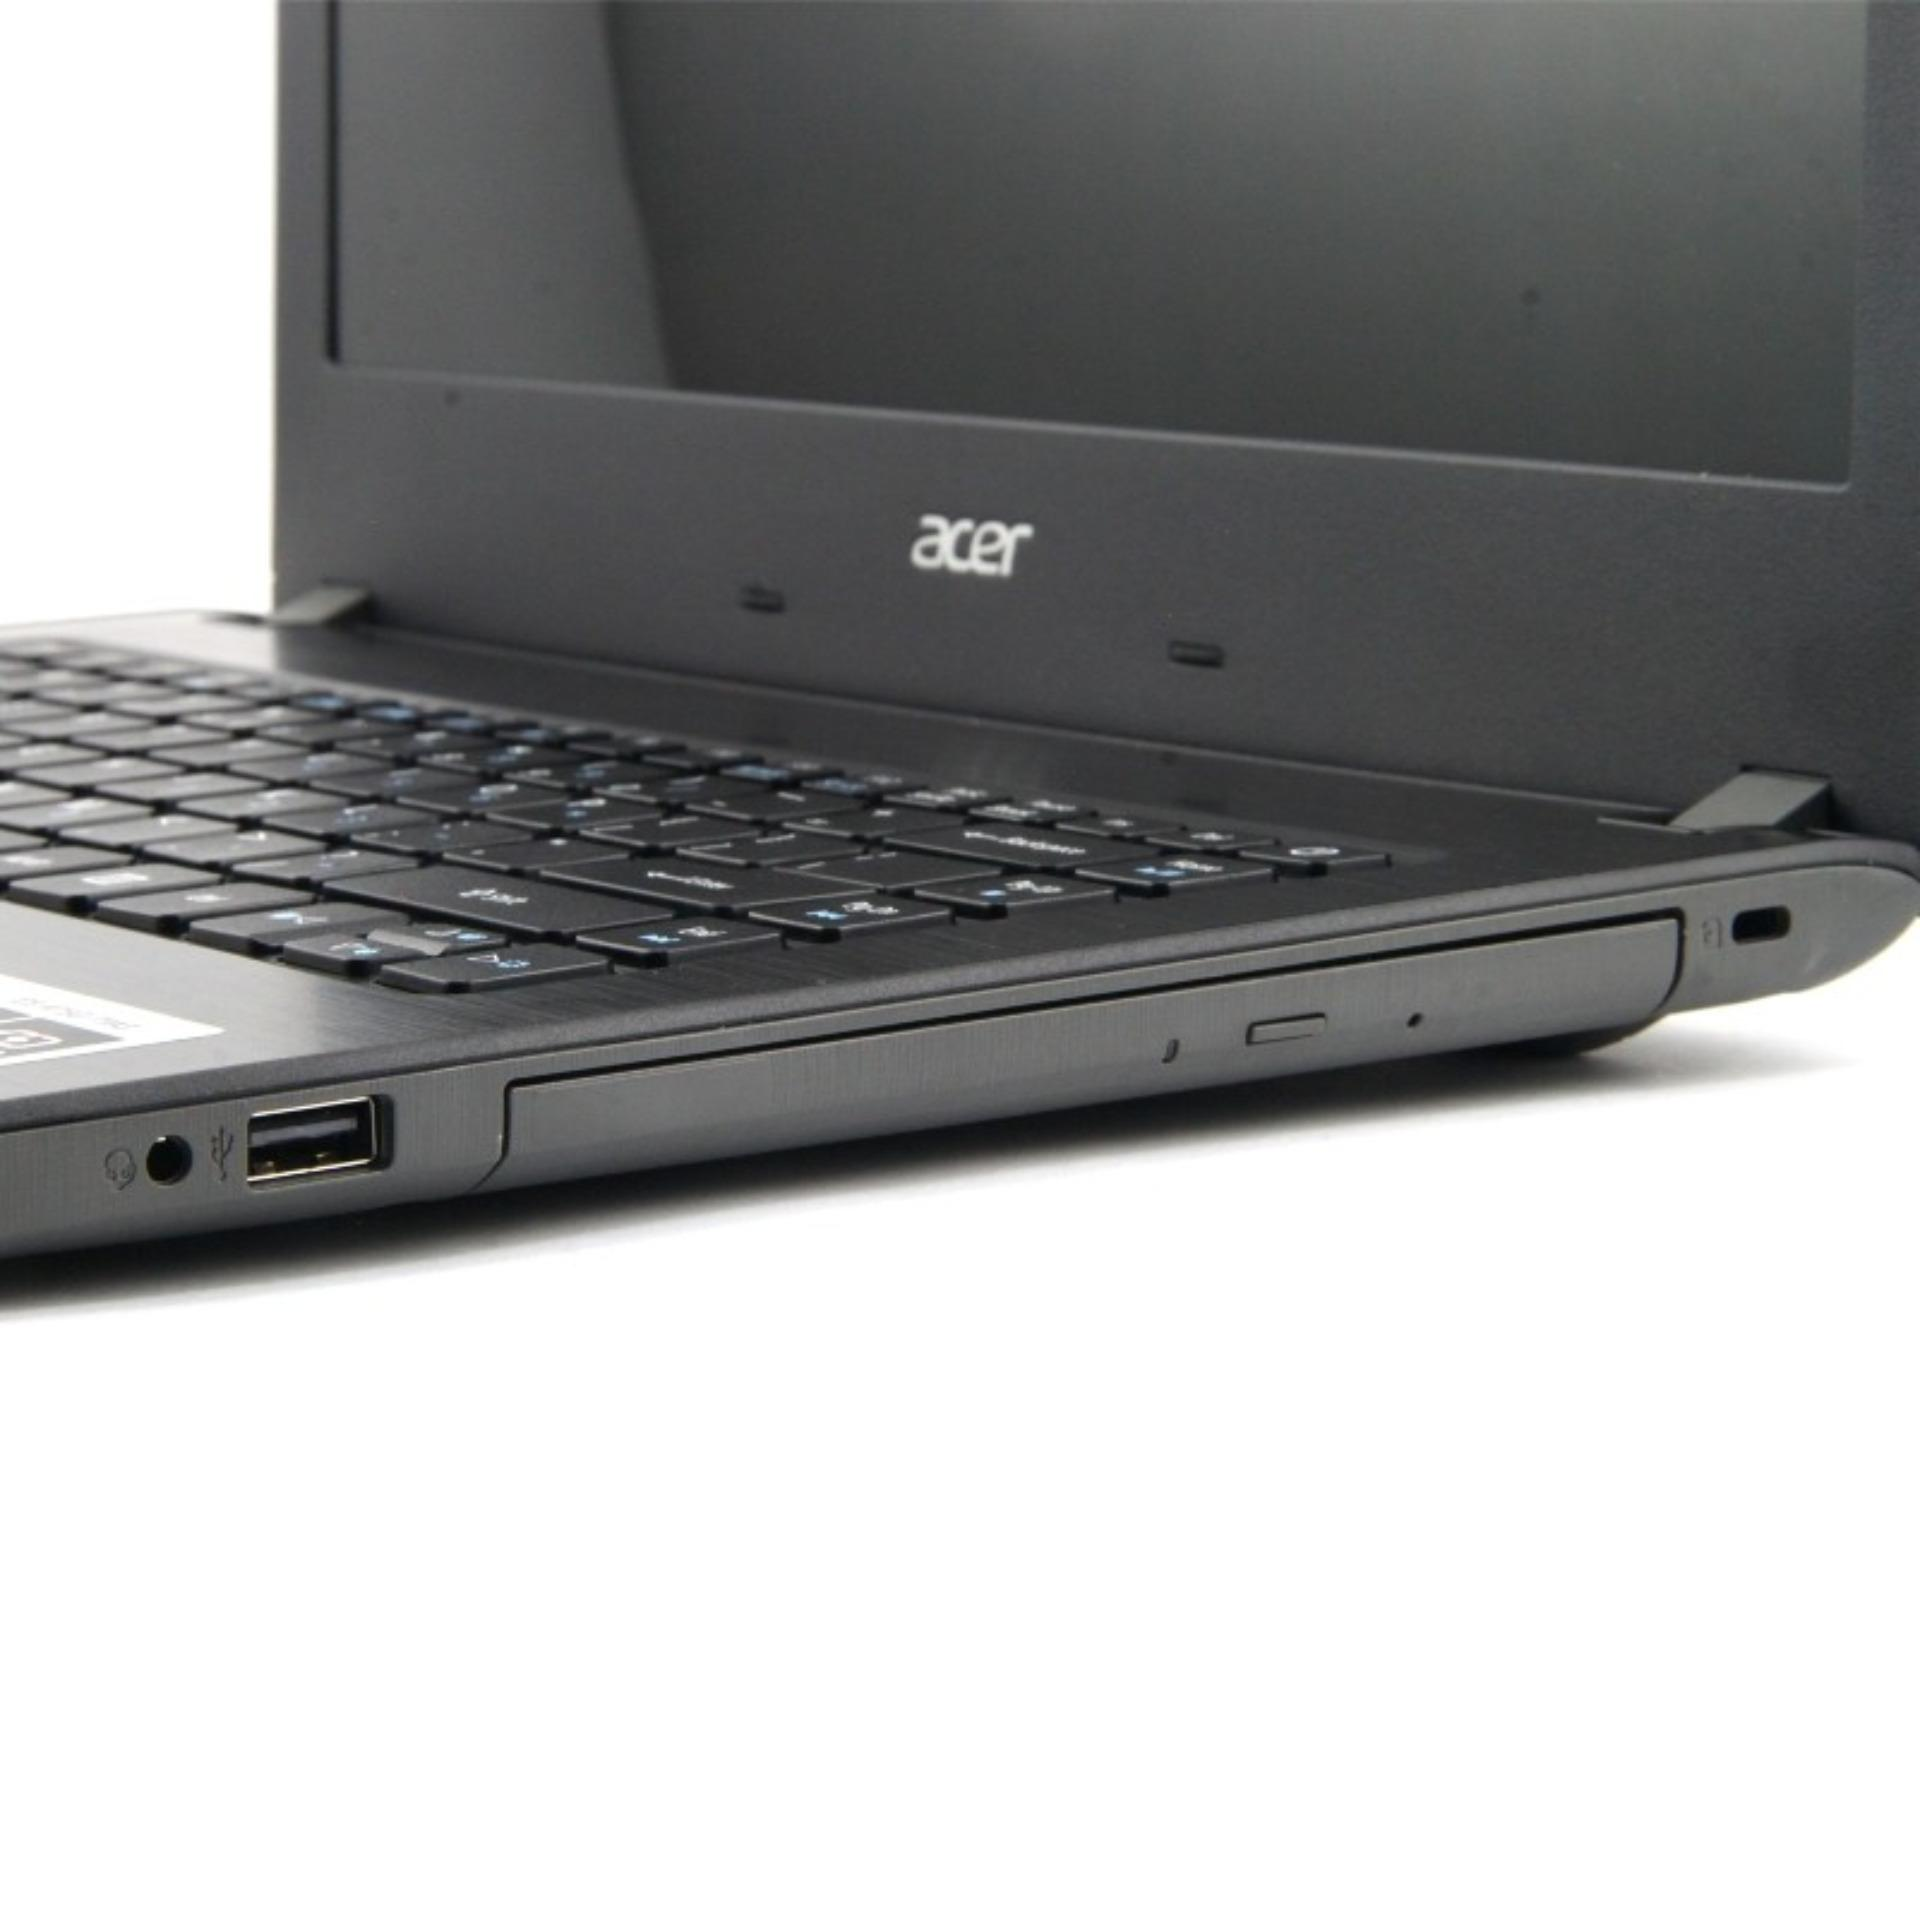 Acer E5 475 Intel Core I3 6006u 4gb Ram 14 Silver Abu Linux Spec Asus X441ua Wx095d Notebook Black Inch Dos Aspire 475g 73a3 Steel Grey I7